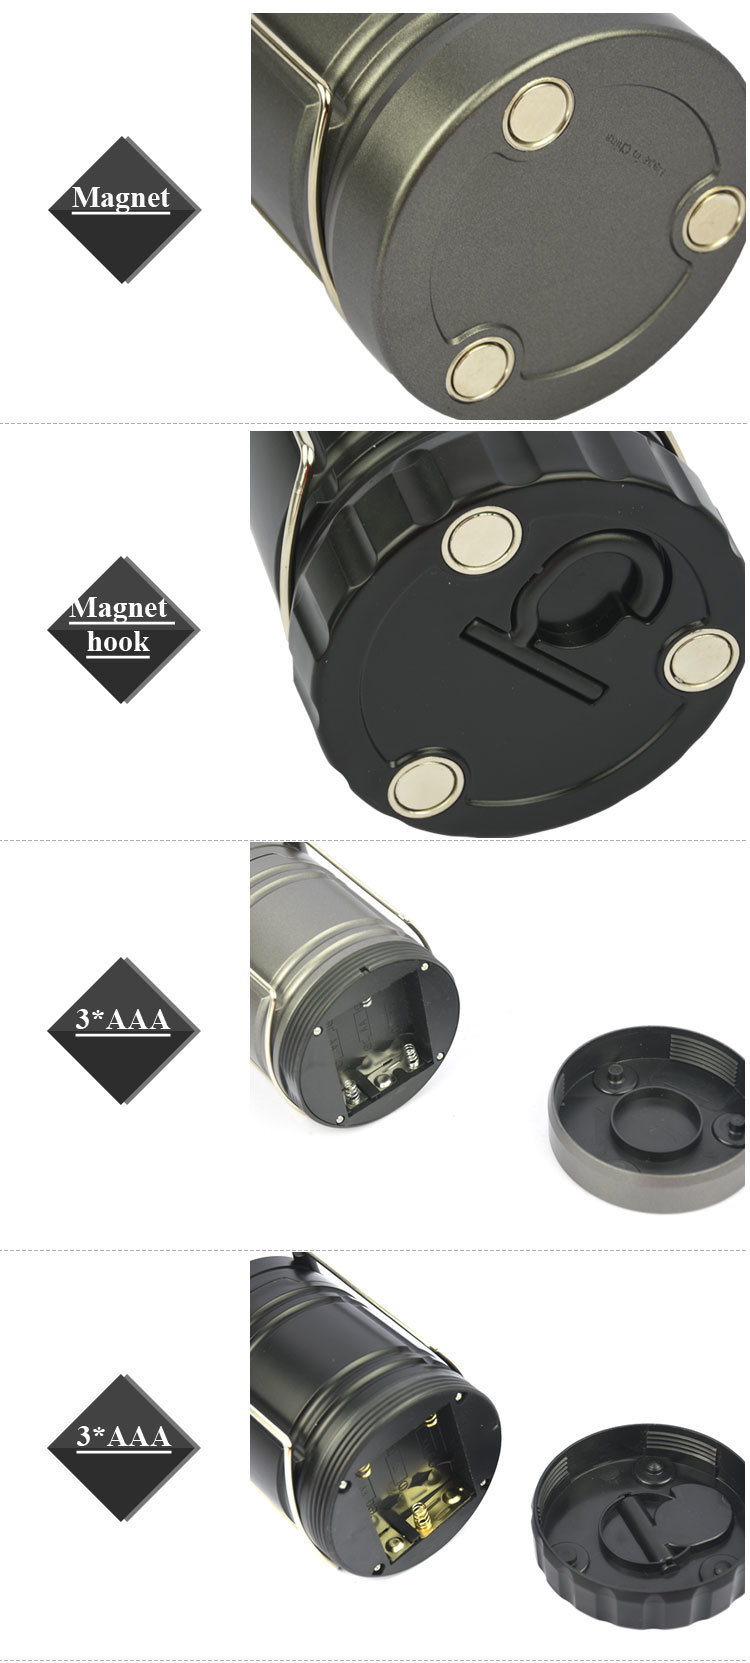 Most Powerful Daily Waterproof Camping Lantern LED Outdoor Lamp for Hiking